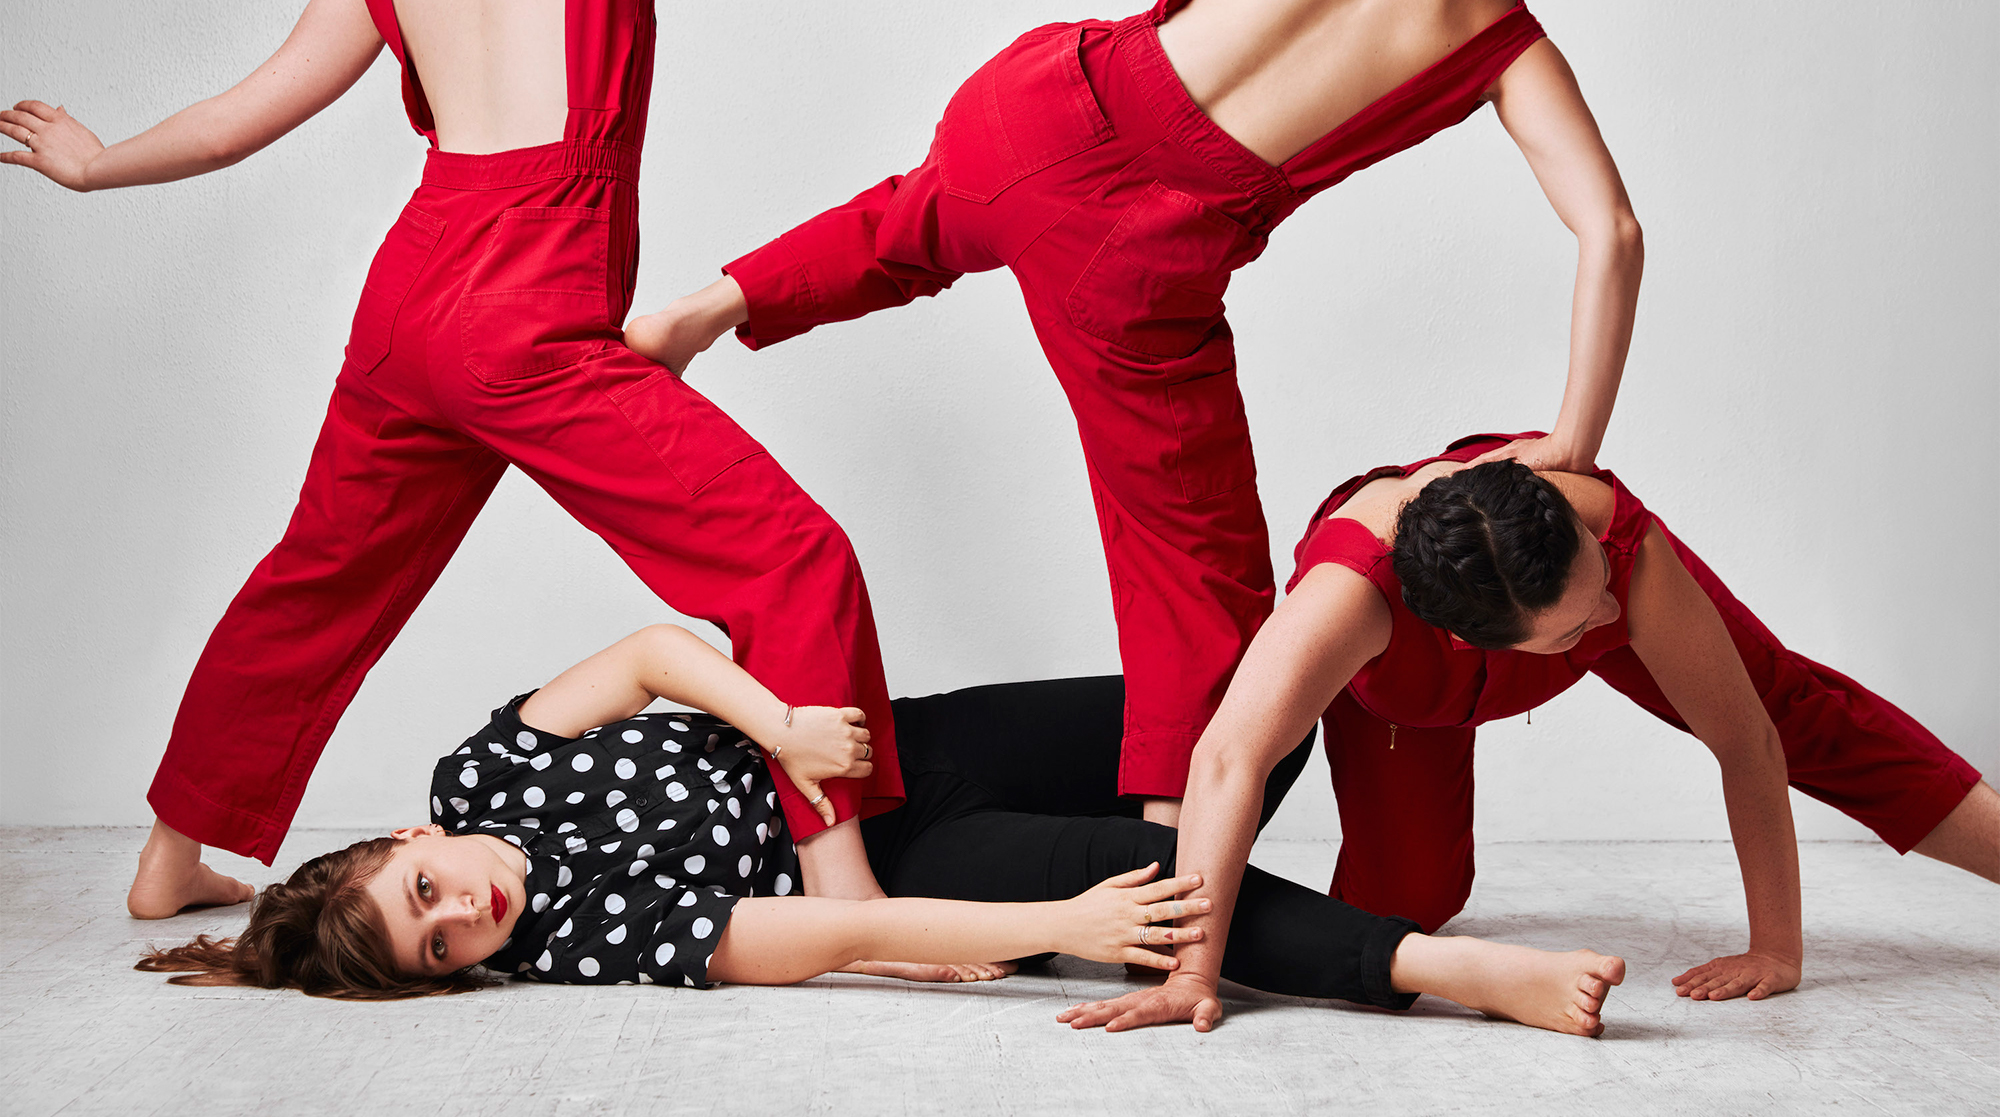 how to be a partisan, alice gosti, choreographer gosti, italy gosti, alice gosti choreographer, uw school of dance, quinn russell brown, quinn brown